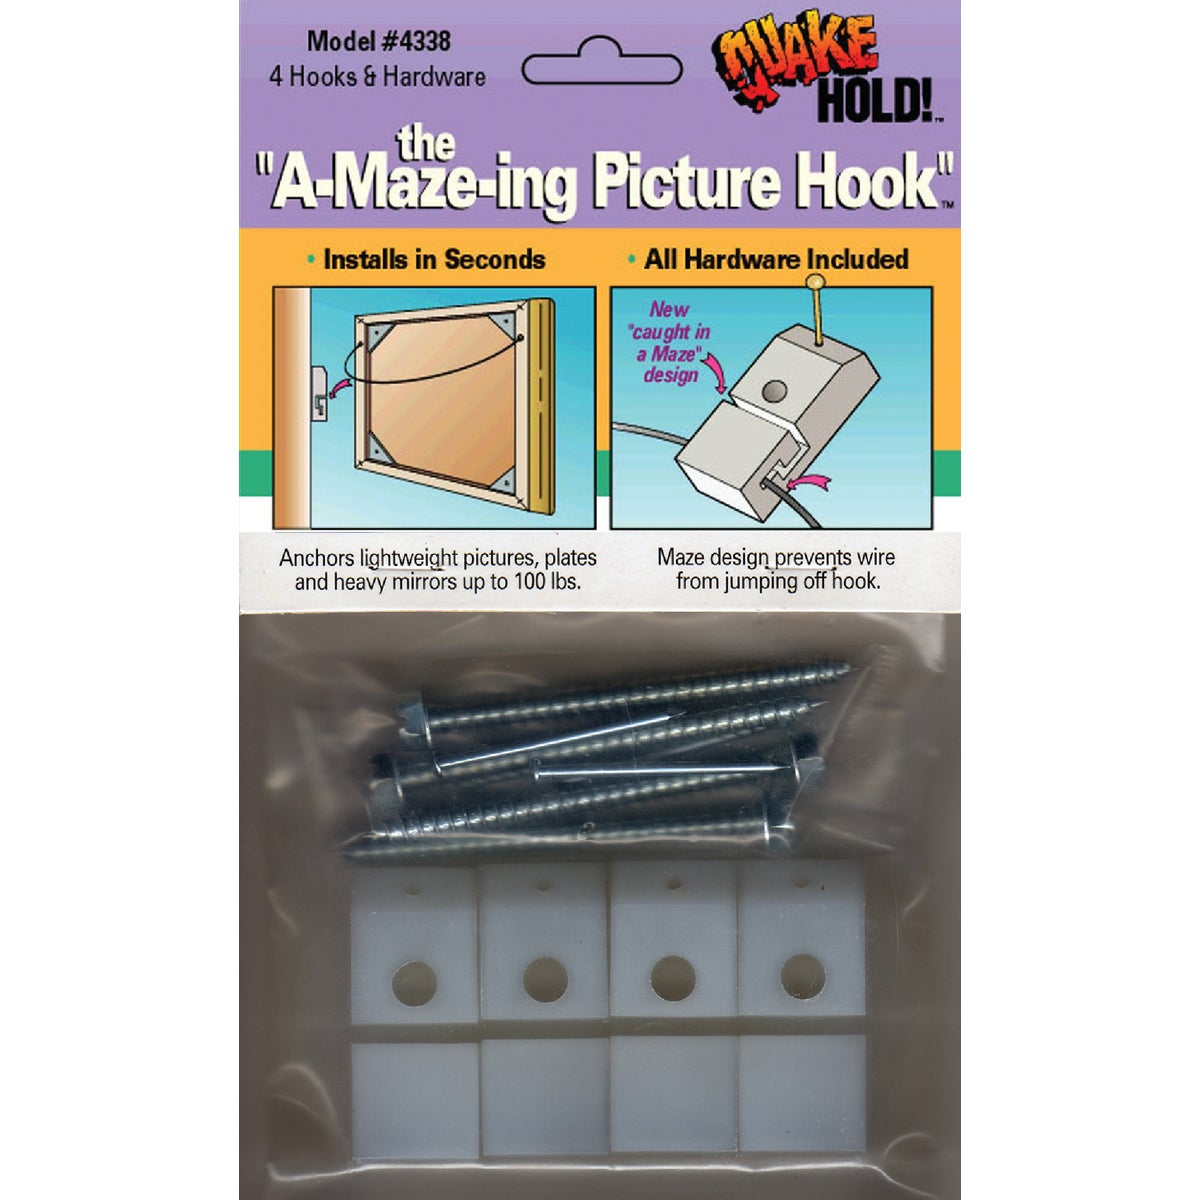 ANTI FALL PICTURE HOOKS - 4338 by Ready America Inc